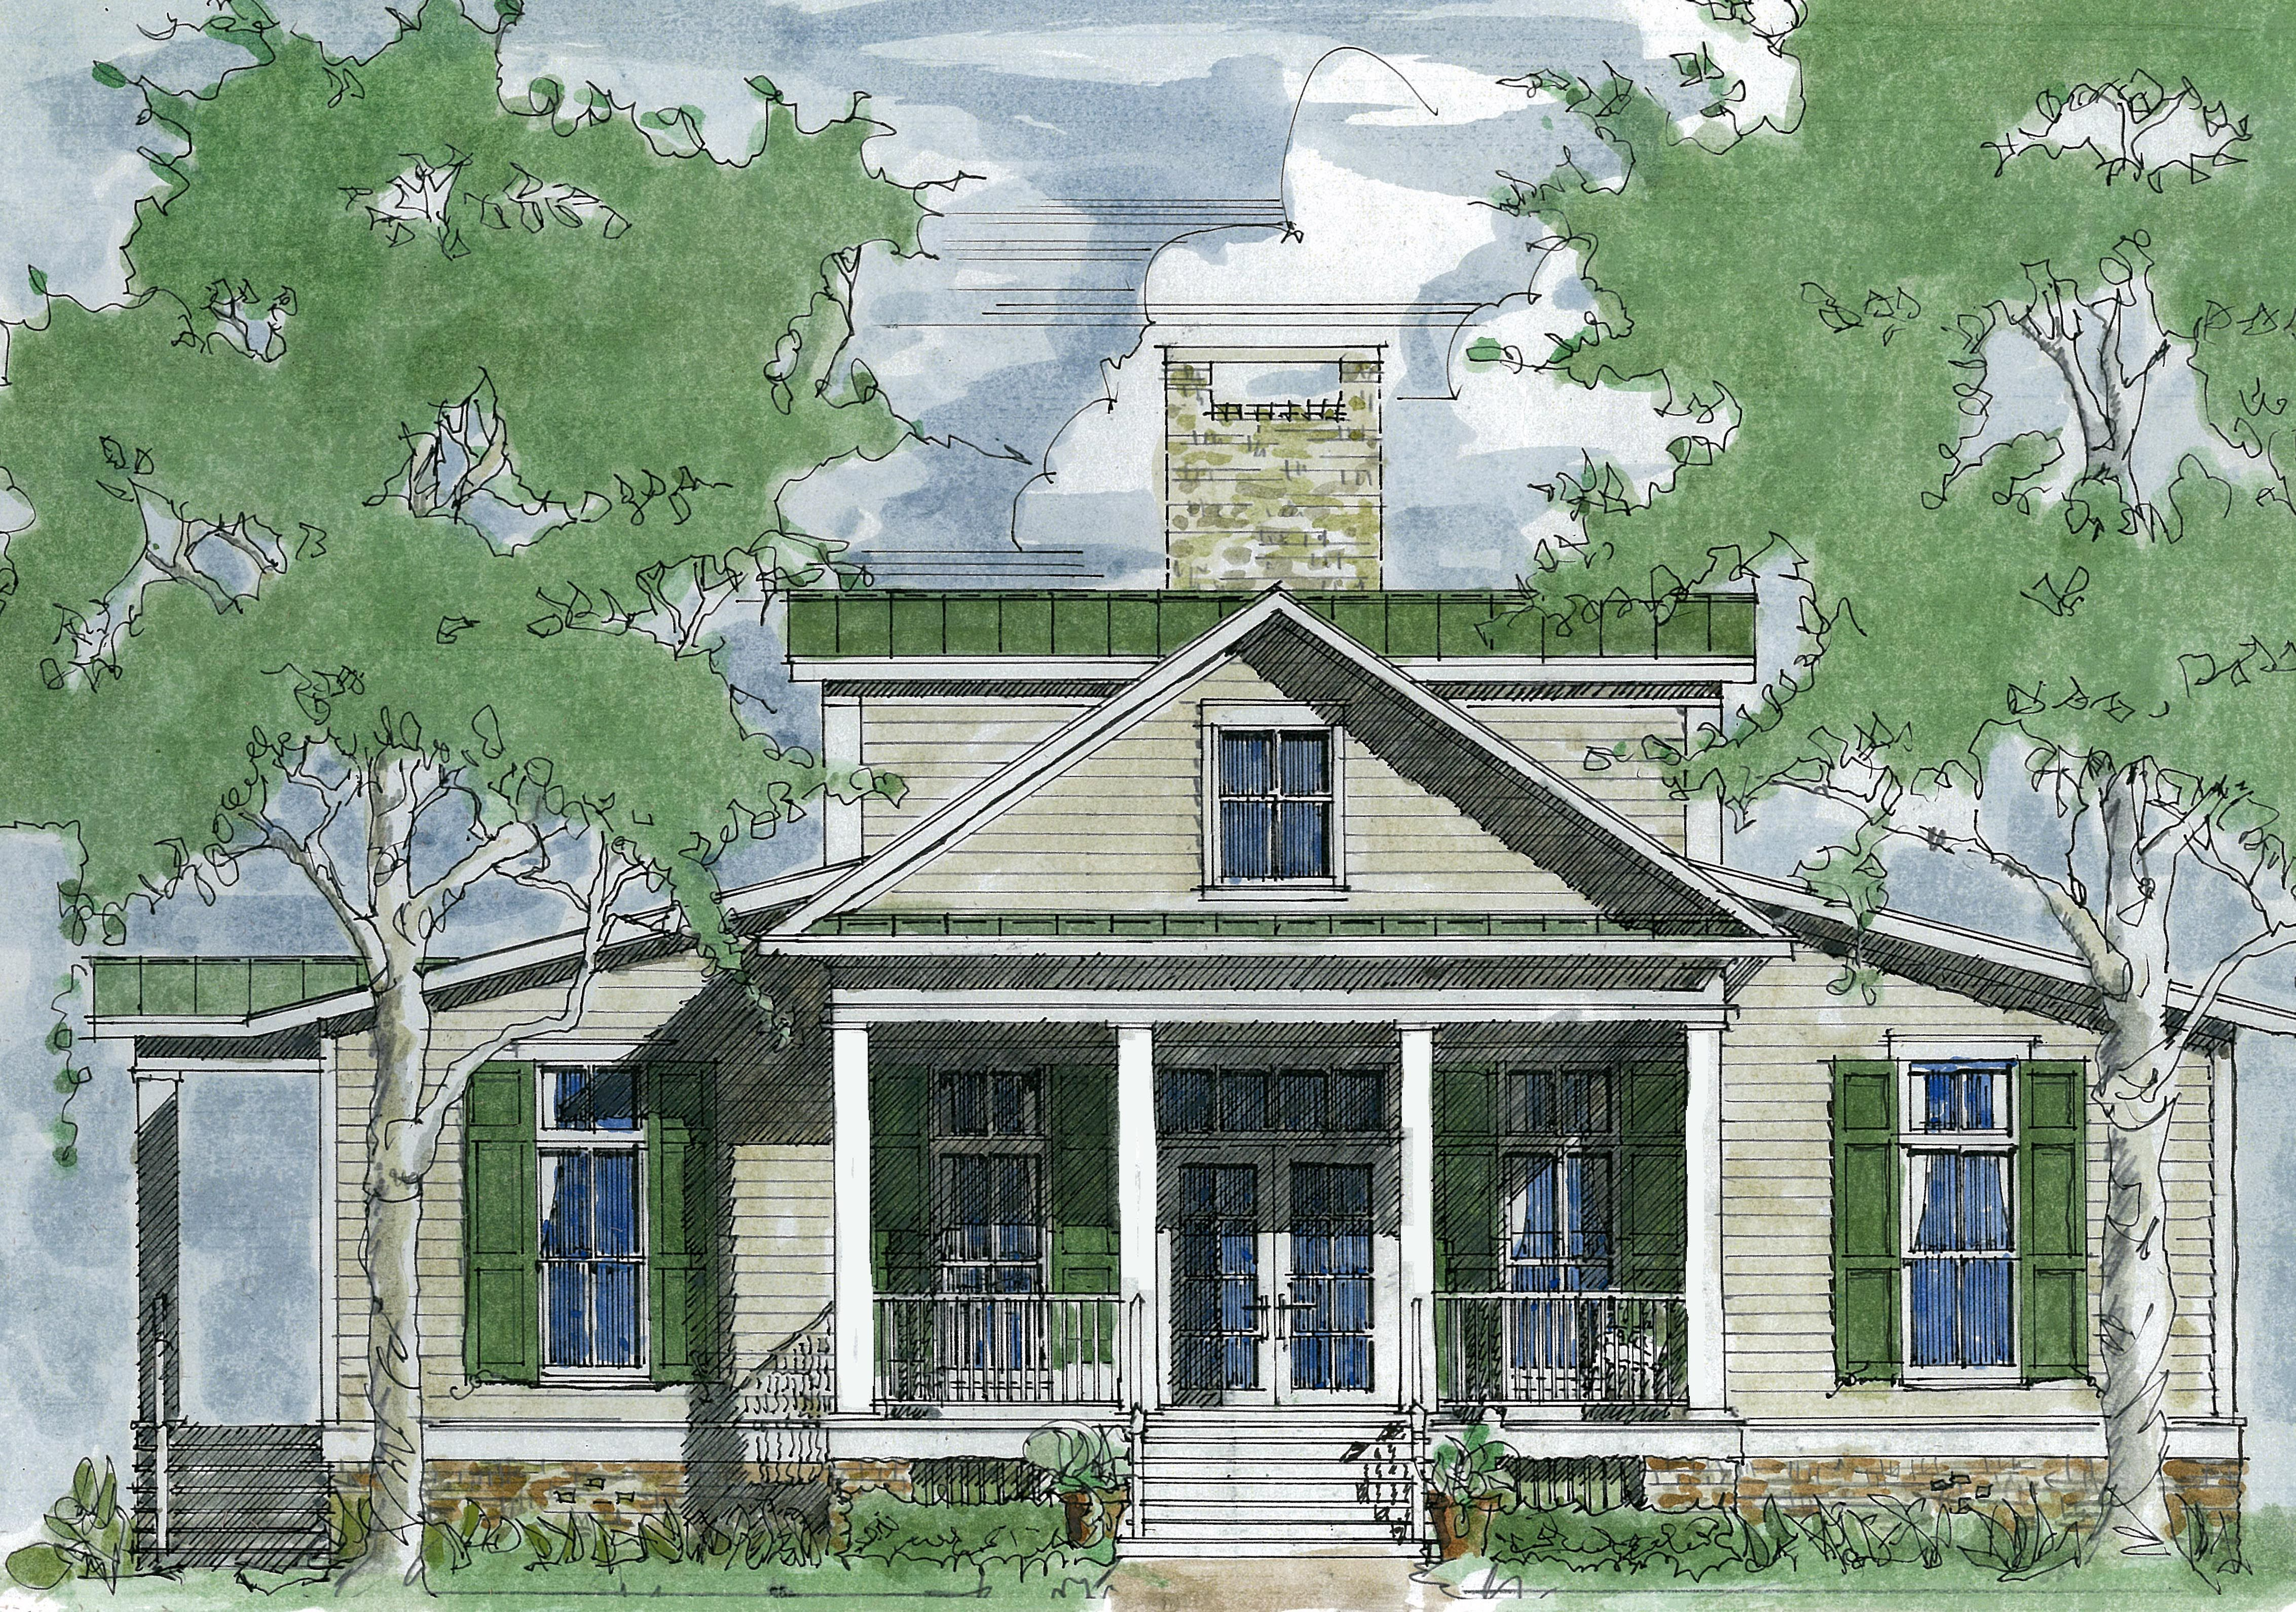 Modern day dogtrot house plans 78 1000 images about house plans on pinterest alabama craftsman